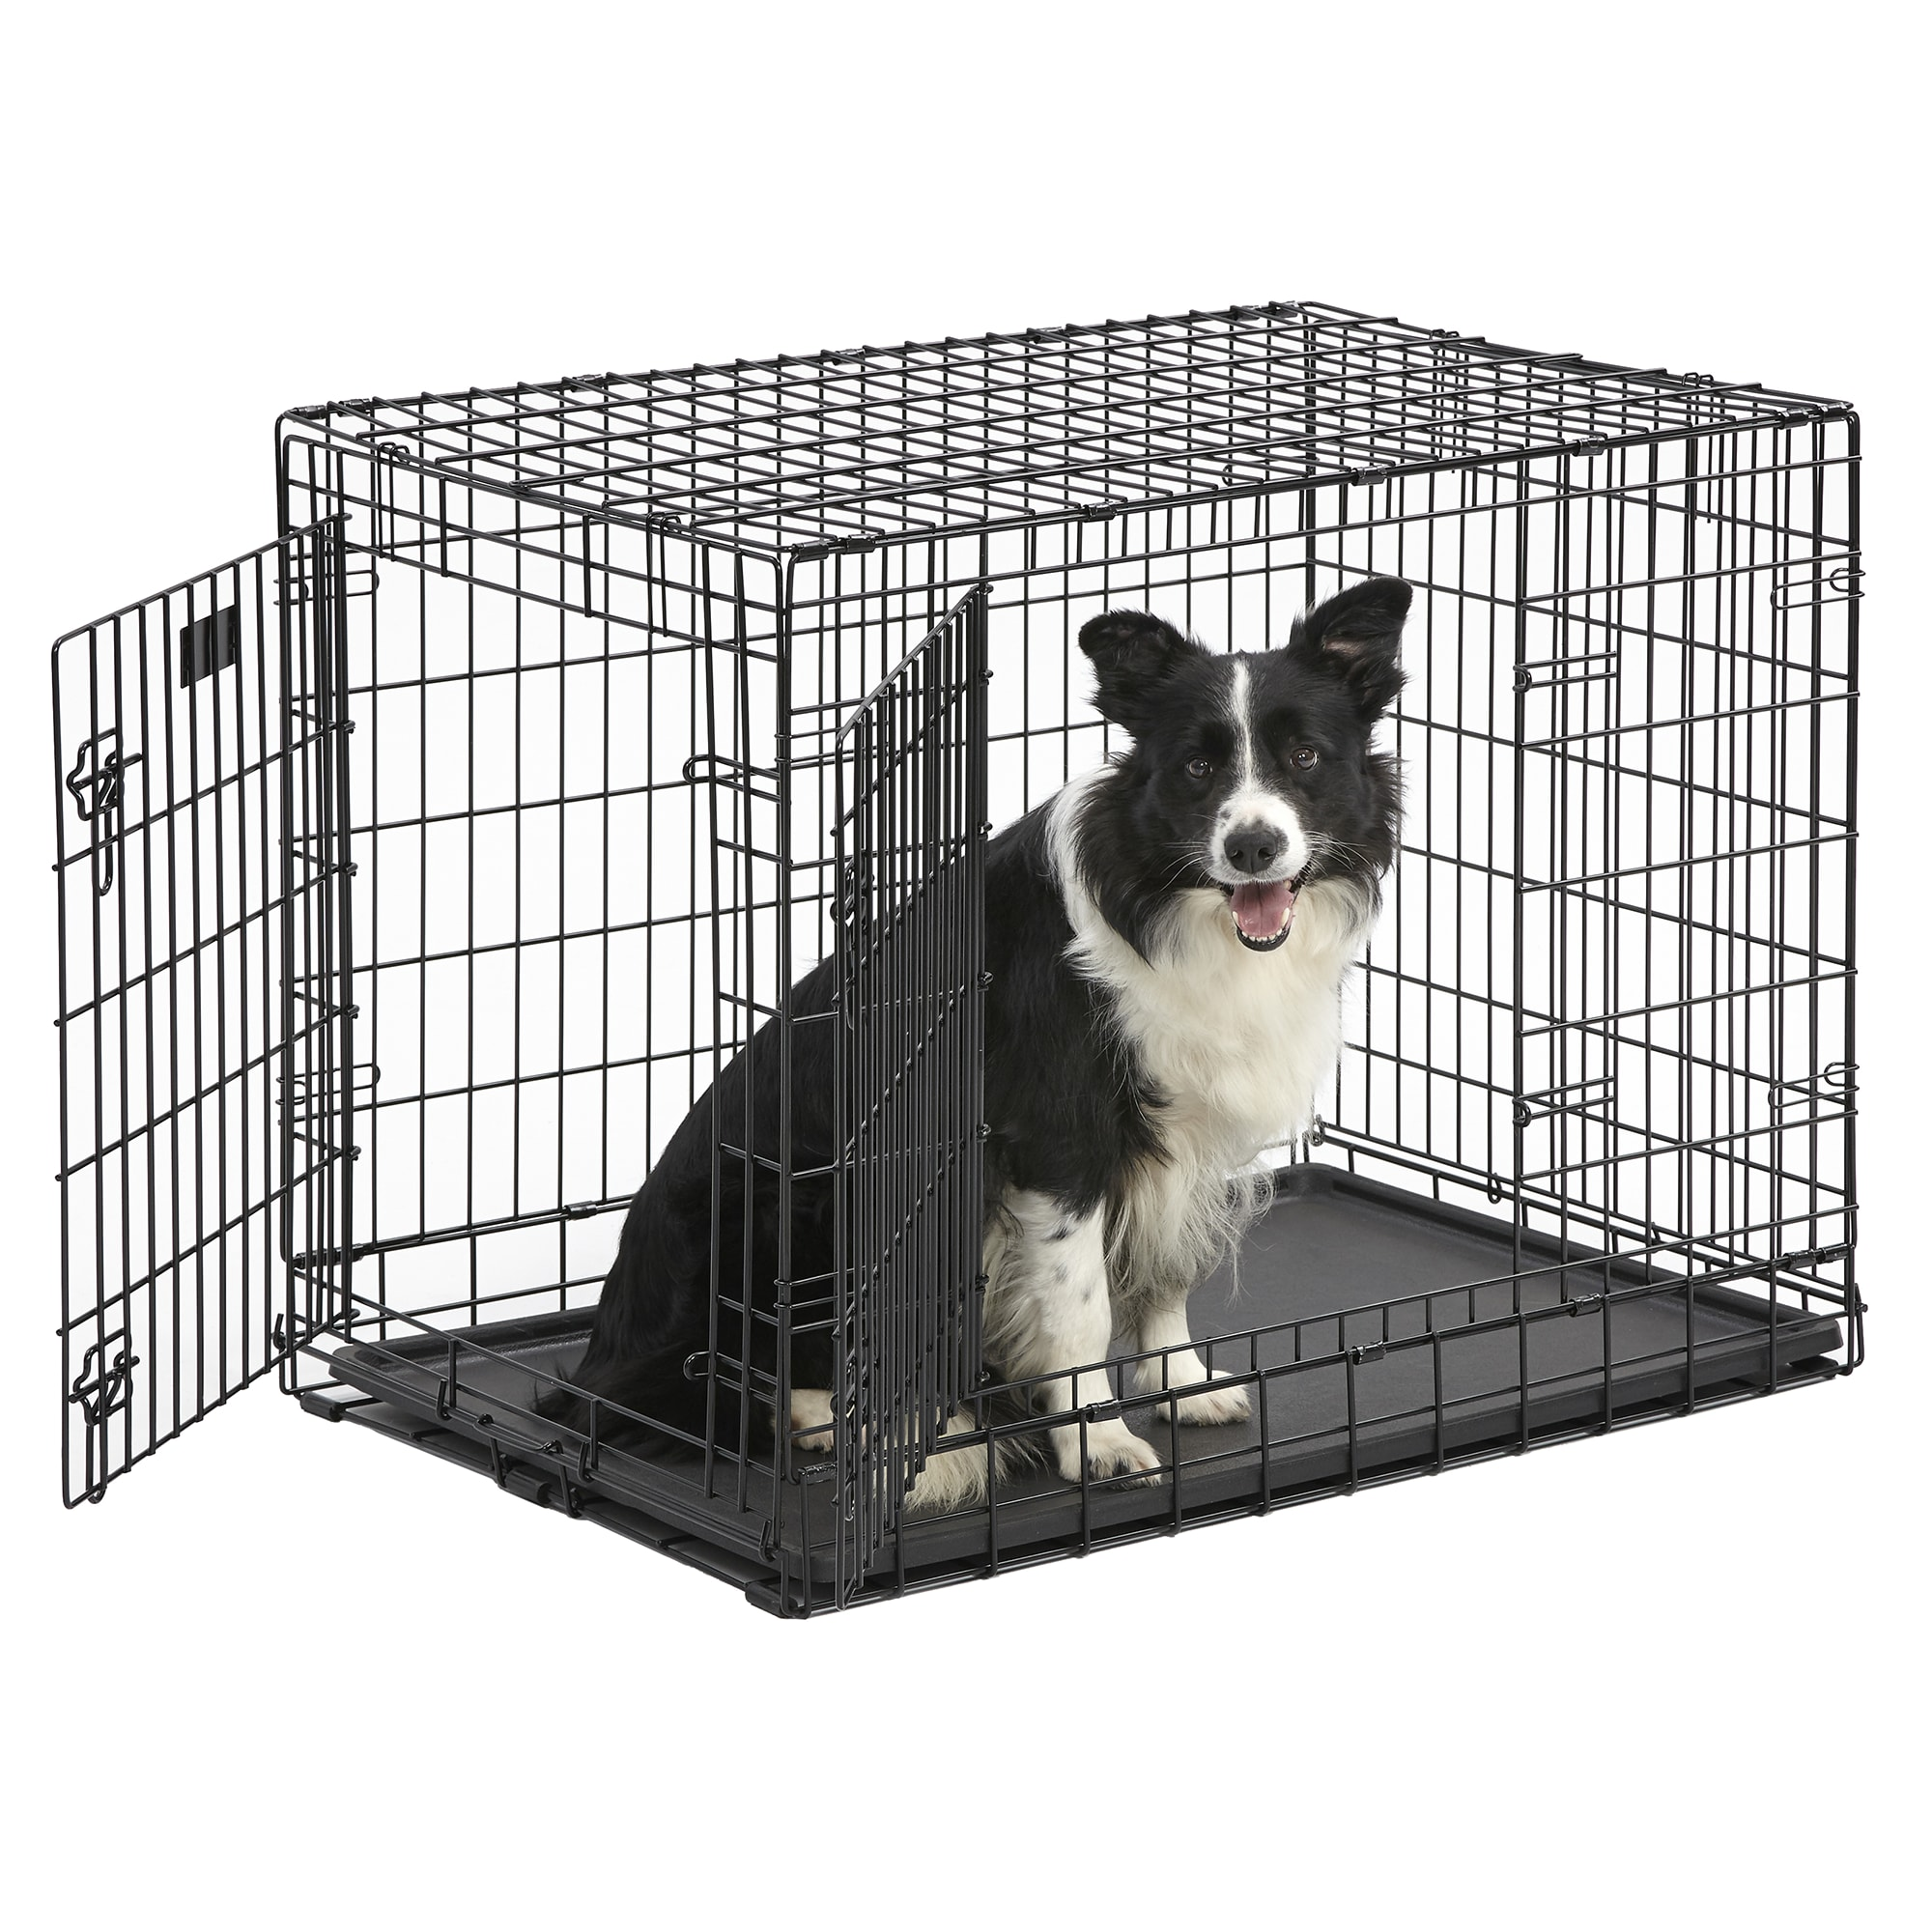 Midwest Ultima Pro Double Door dog crate uses professional gauge steel construction to provide the ultimate level of durability, function, and security for you pet. The fold and carry configuration requires no tools for assembly and can be set up or folded down in seconds and transferred with easy-to-attach plastic carrying handles, making it perfect for dog crate trainers, dog show competitors, professional breeders, and dog lovers and enthusiasts alike. Two doors allow easy access to your pet either thru the traditional front door or side door. With two access points the crate can be easily placed in your home or your car and is convenient to the often small spaces provided at busy dog shows. The slide-out plastic pan allows easy removal for cleaning and the dual slide bolt latches provide safety and security for your pet inside and furniture or other objects on the outside.